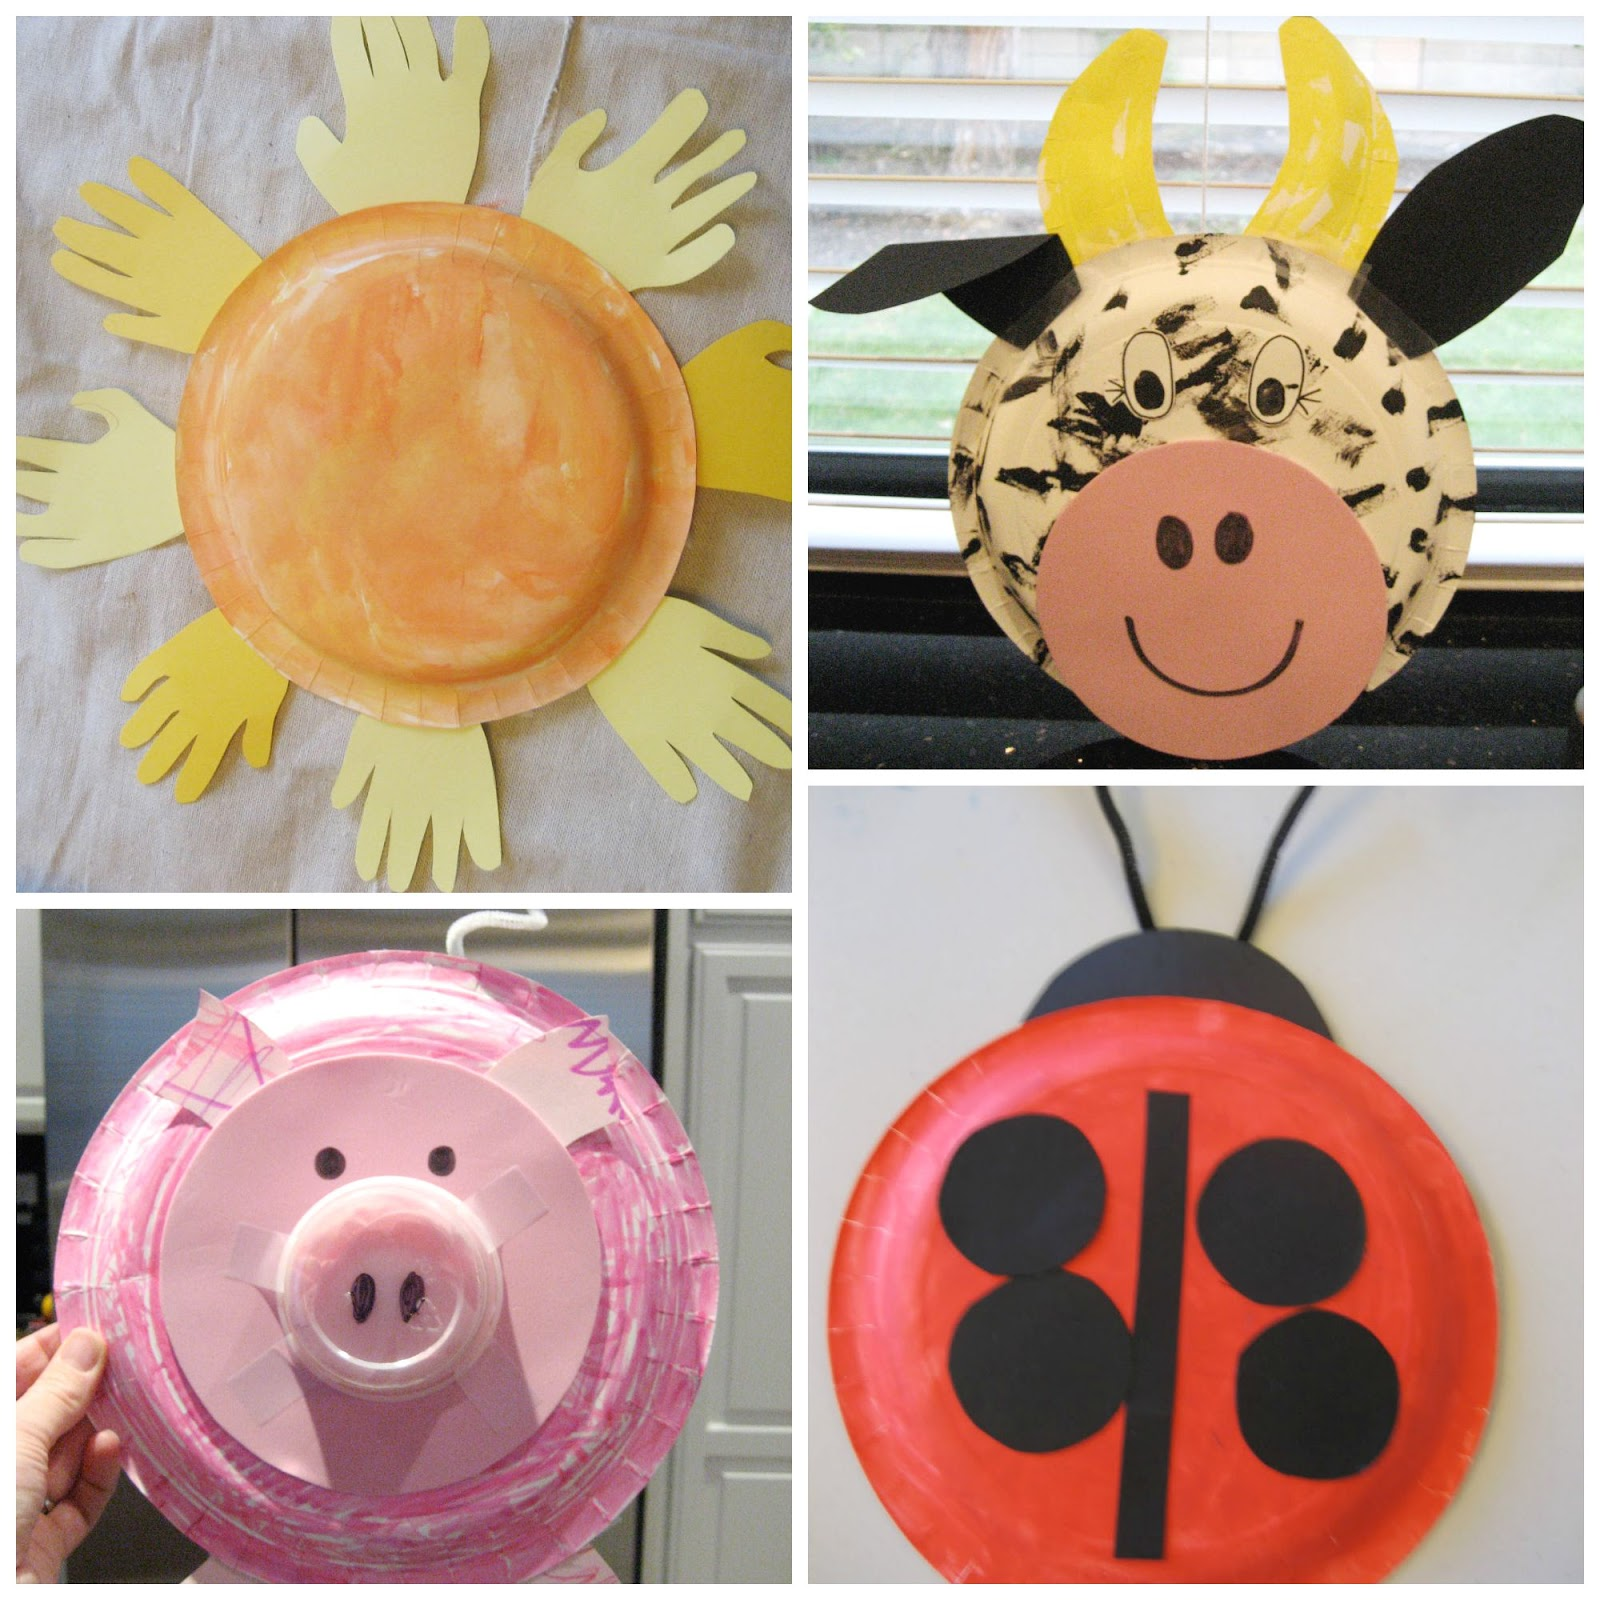 Paper Plate Crafts & Toddler Approved!: 30+ Paper Plate Crafts u0026 Activities for Kids